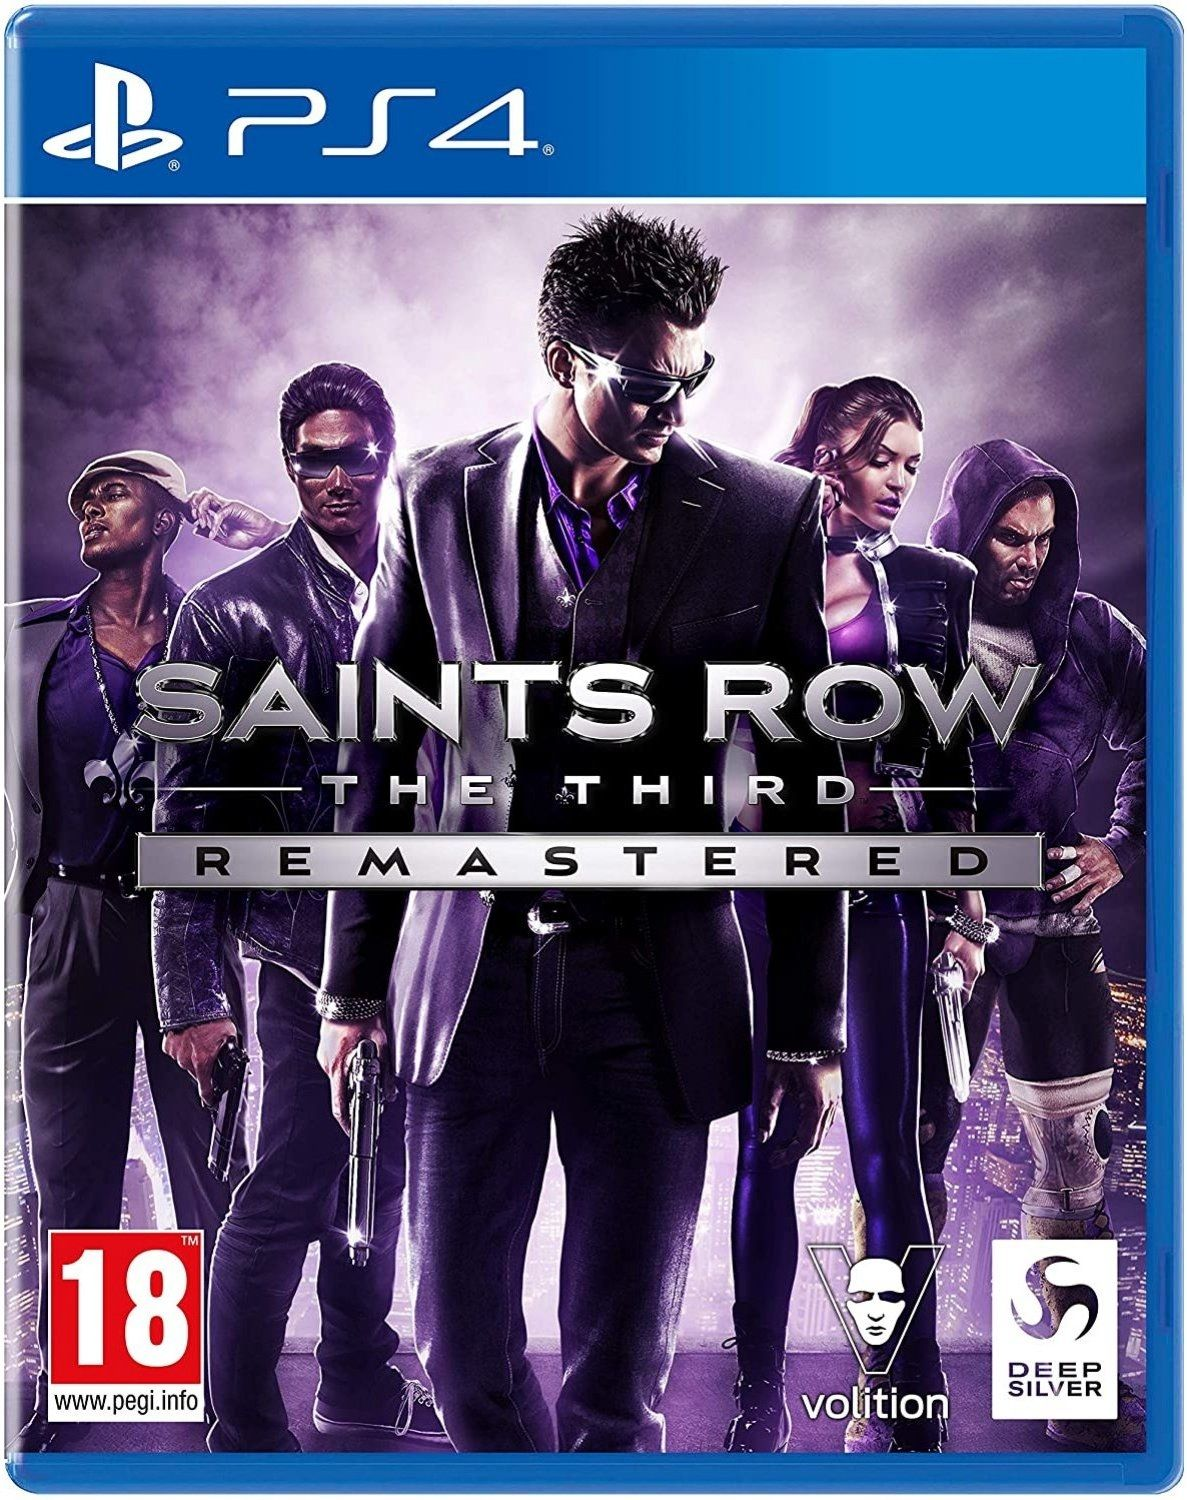 Saints Row: The Third - Remastered (PS4) - 1